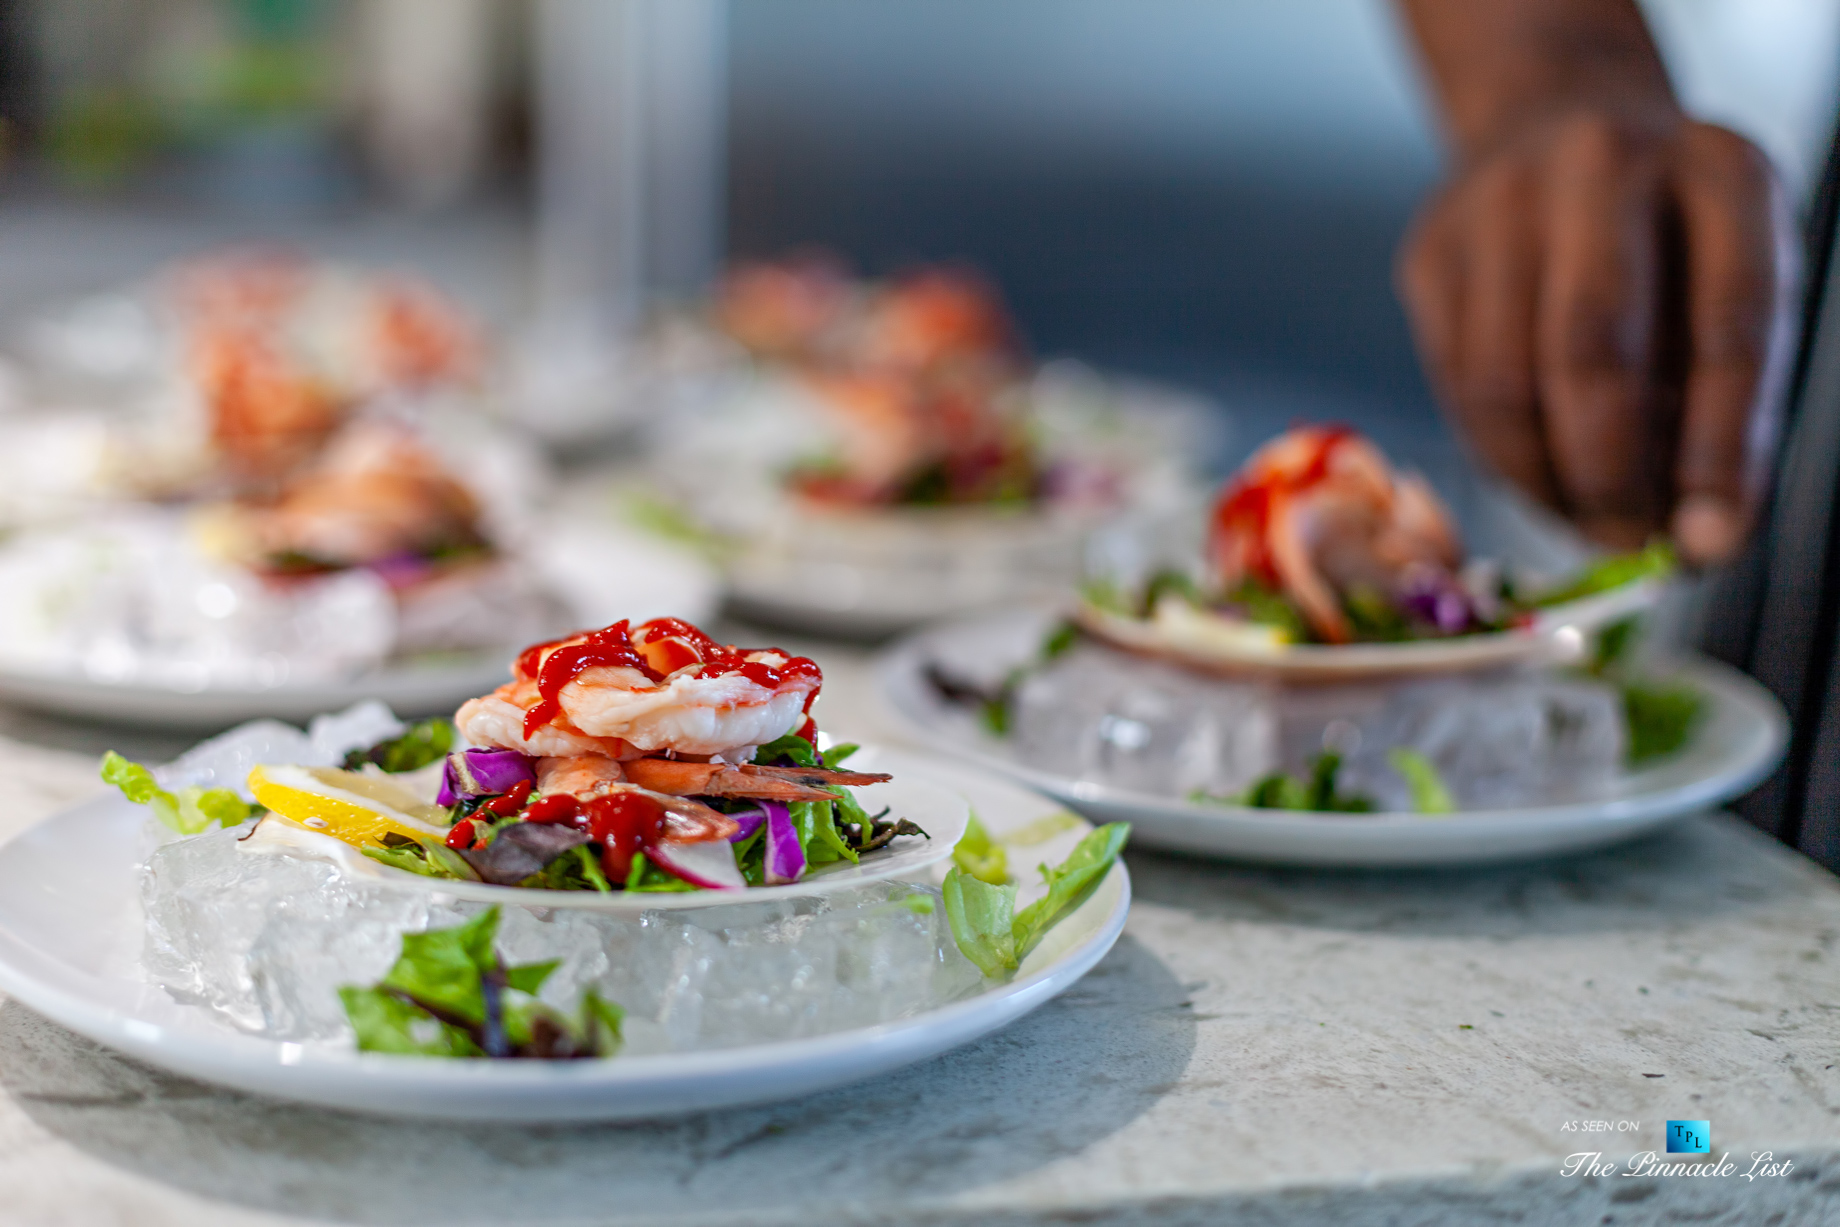 Tip of the Tail Villa - Providenciales, Turks and Caicos Islands - Caribbean House Kitchen Gourmet Food - Luxury Real Estate - South Shore Peninsula Home